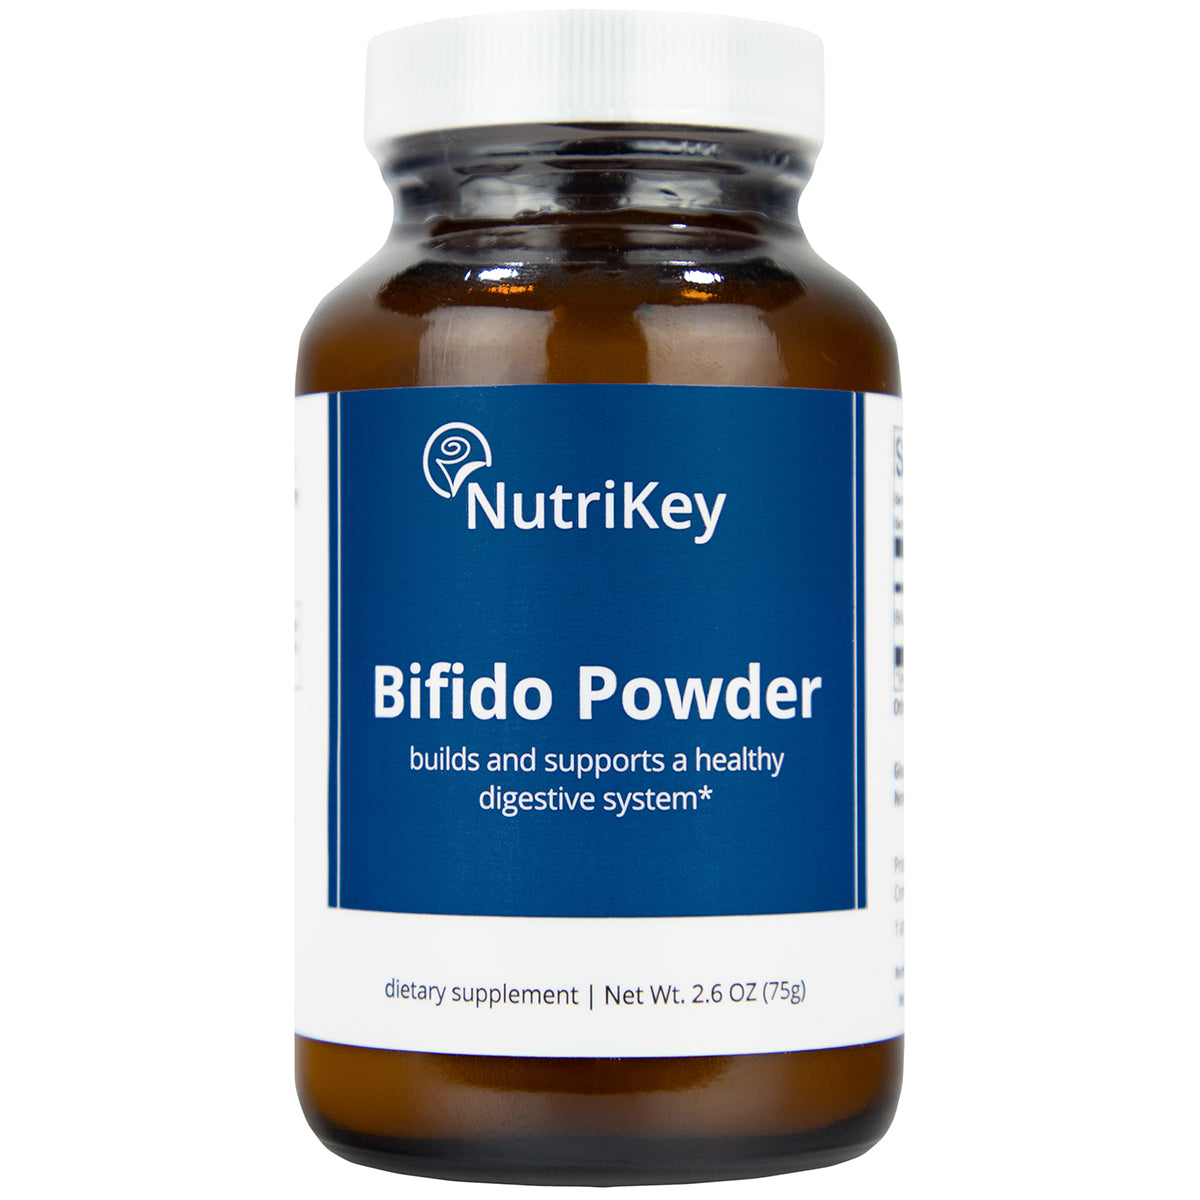 NutriKey Bifido Powder